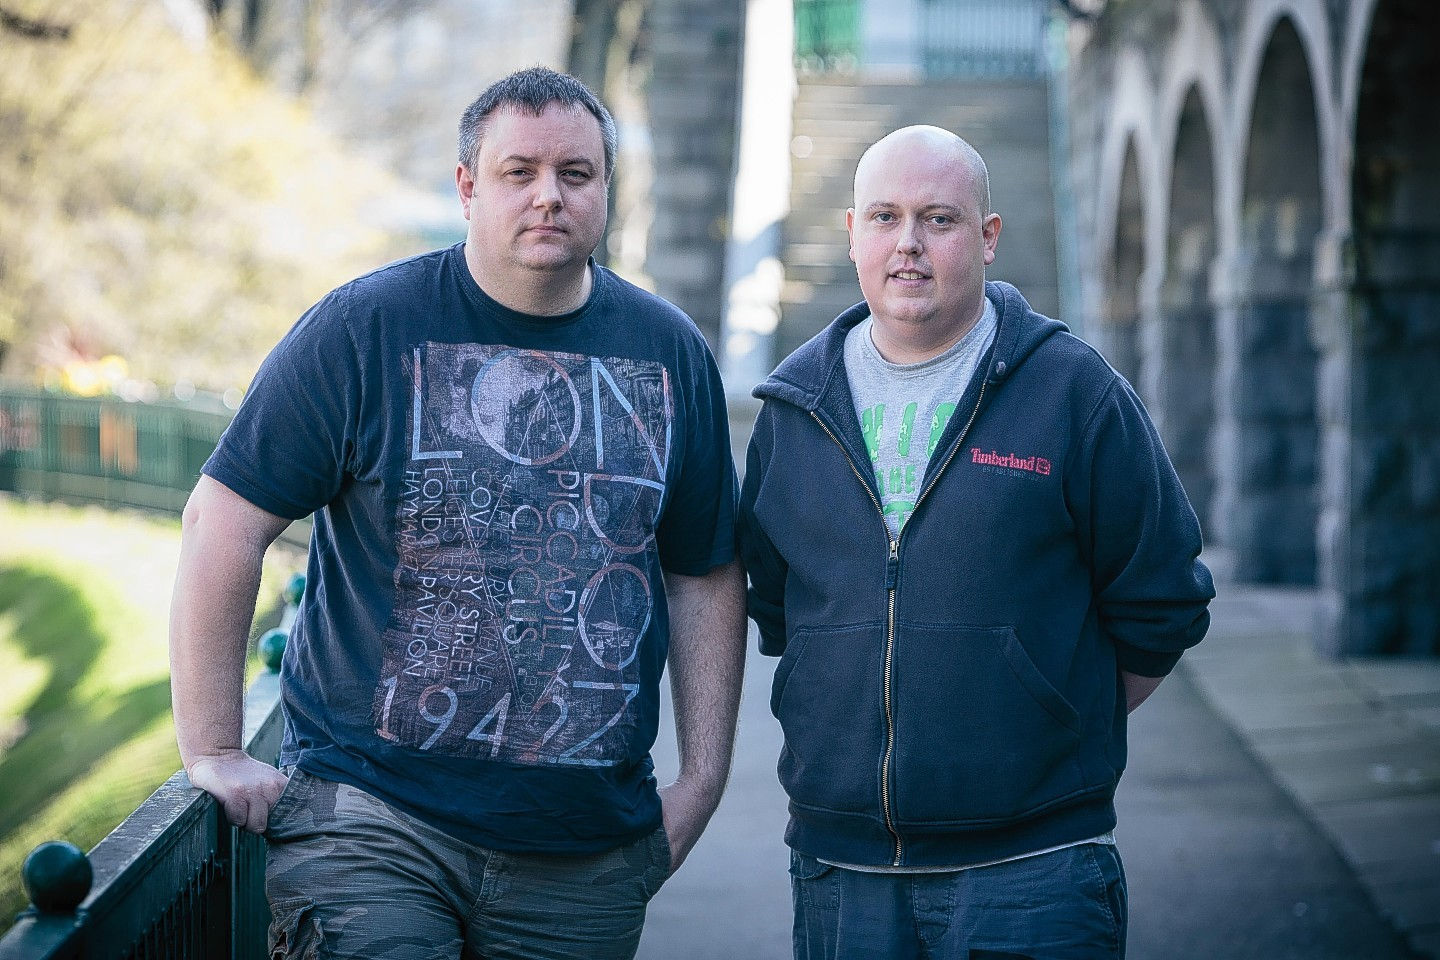 Stephen Harper, 31, entered into a civil partnership with long term partner Gavin in a hospital ward shortly after being diagnosed with non Hodgkin's lymphoma last year